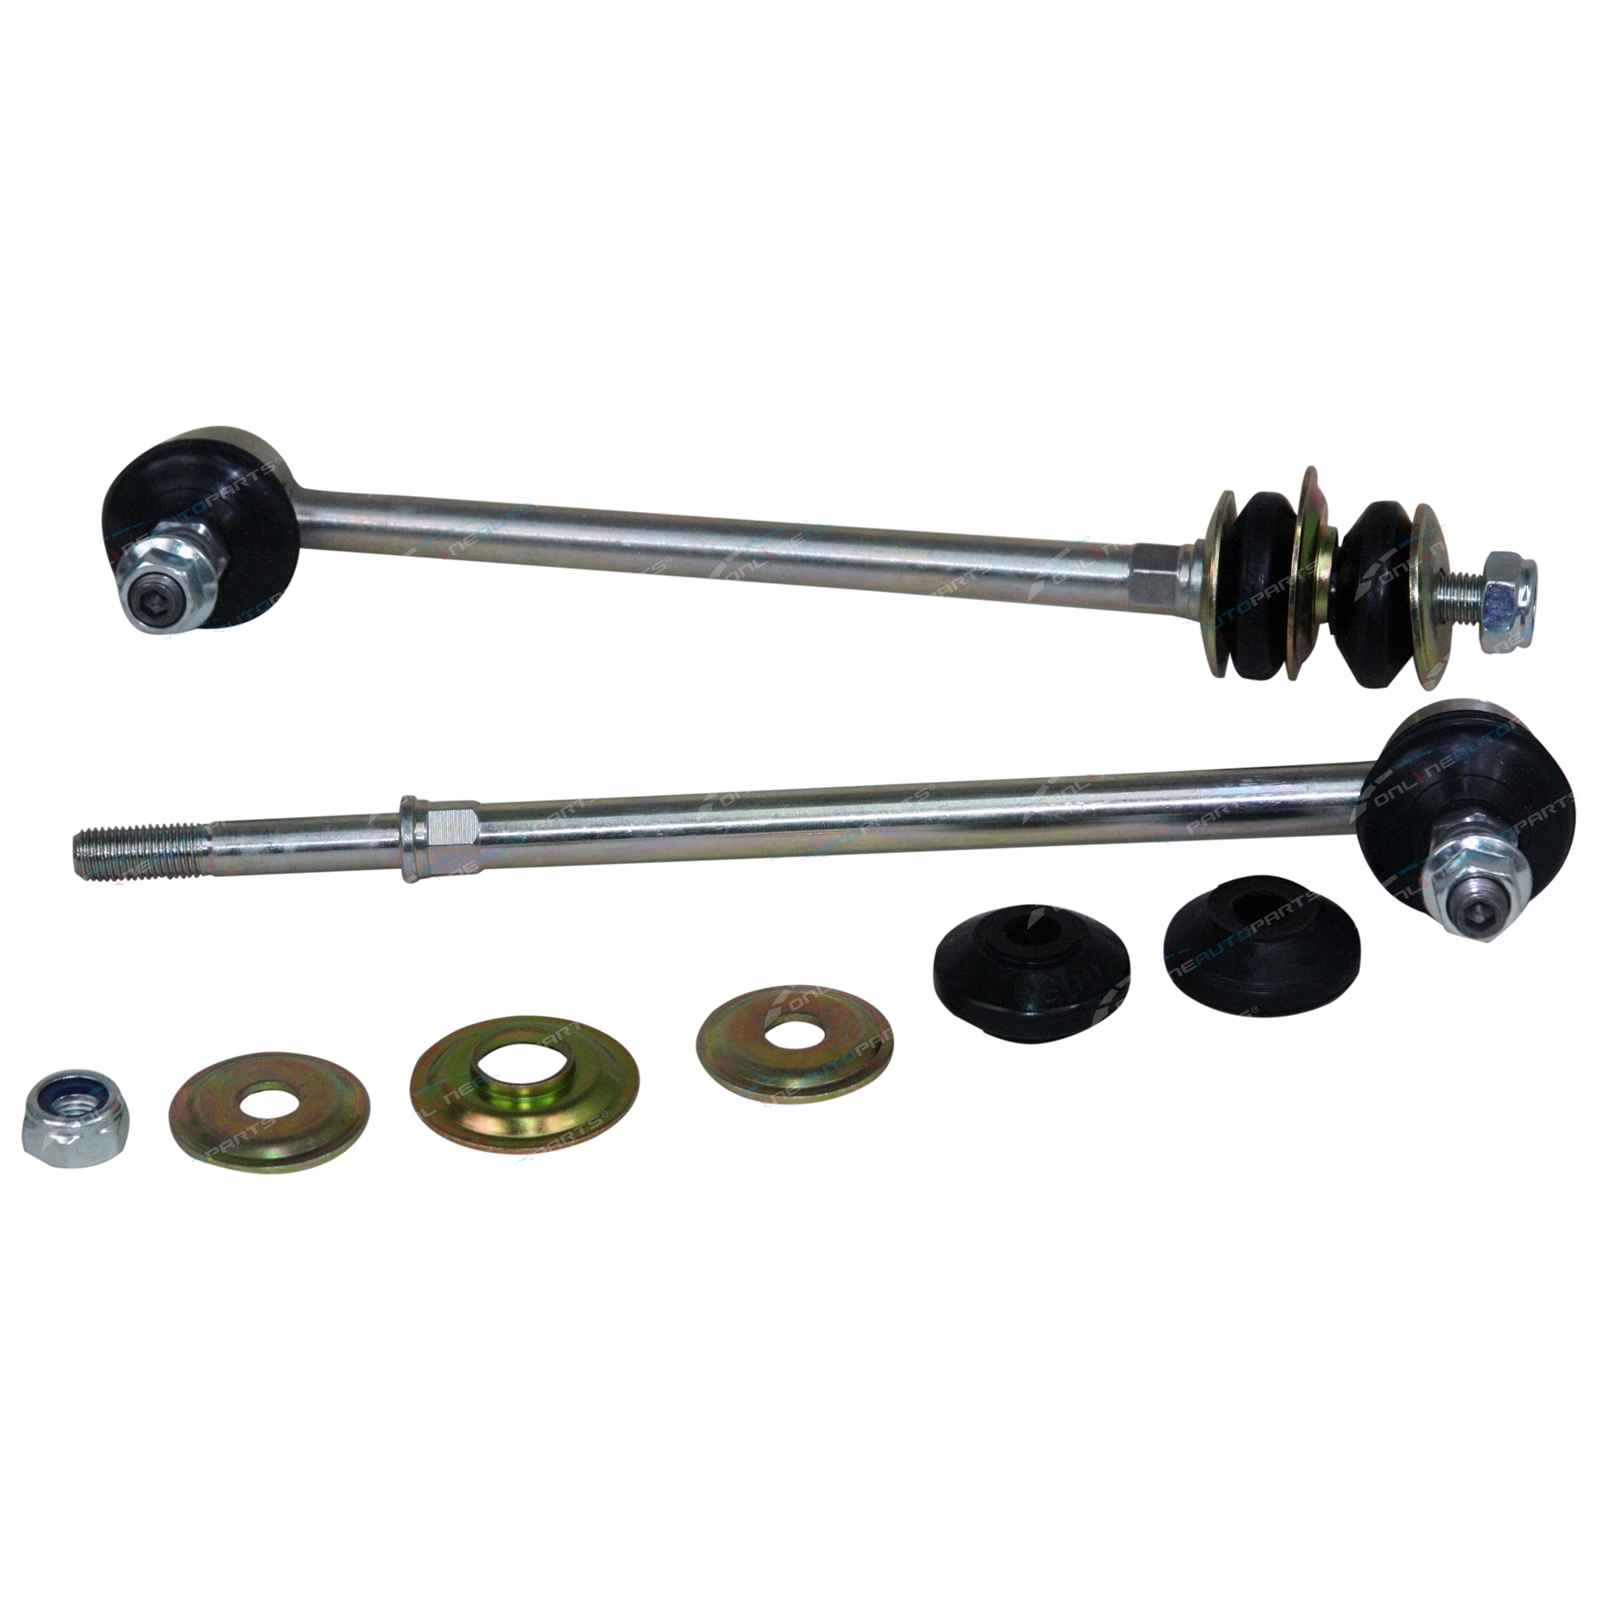 You Can Add The Stabilizer Bar For An Additional 79: Sway Bar Link Kit Aftermarket OEM Replacement